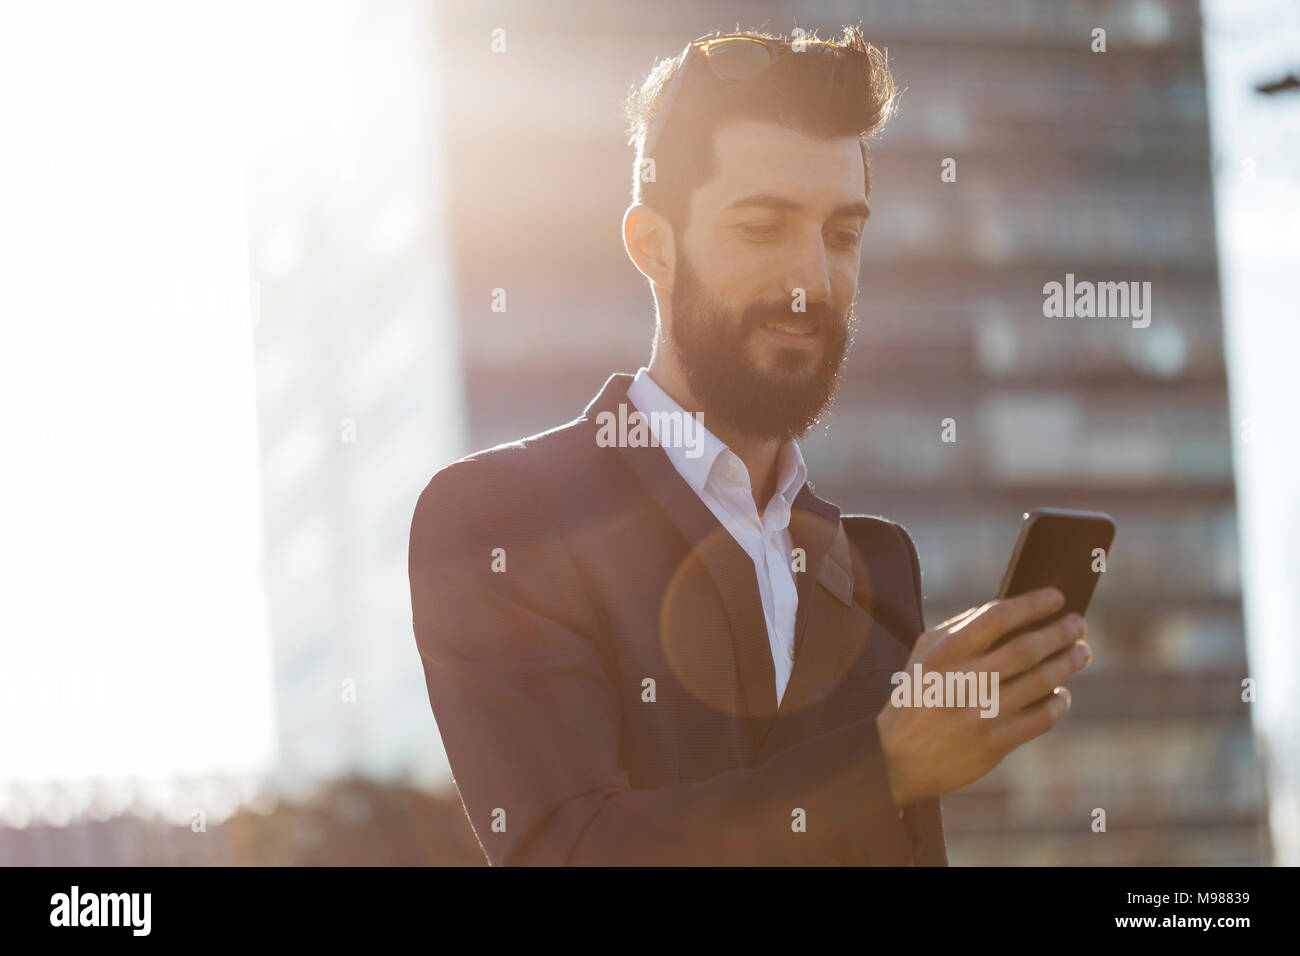 Businessman using cell phone outside office building Photo Stock